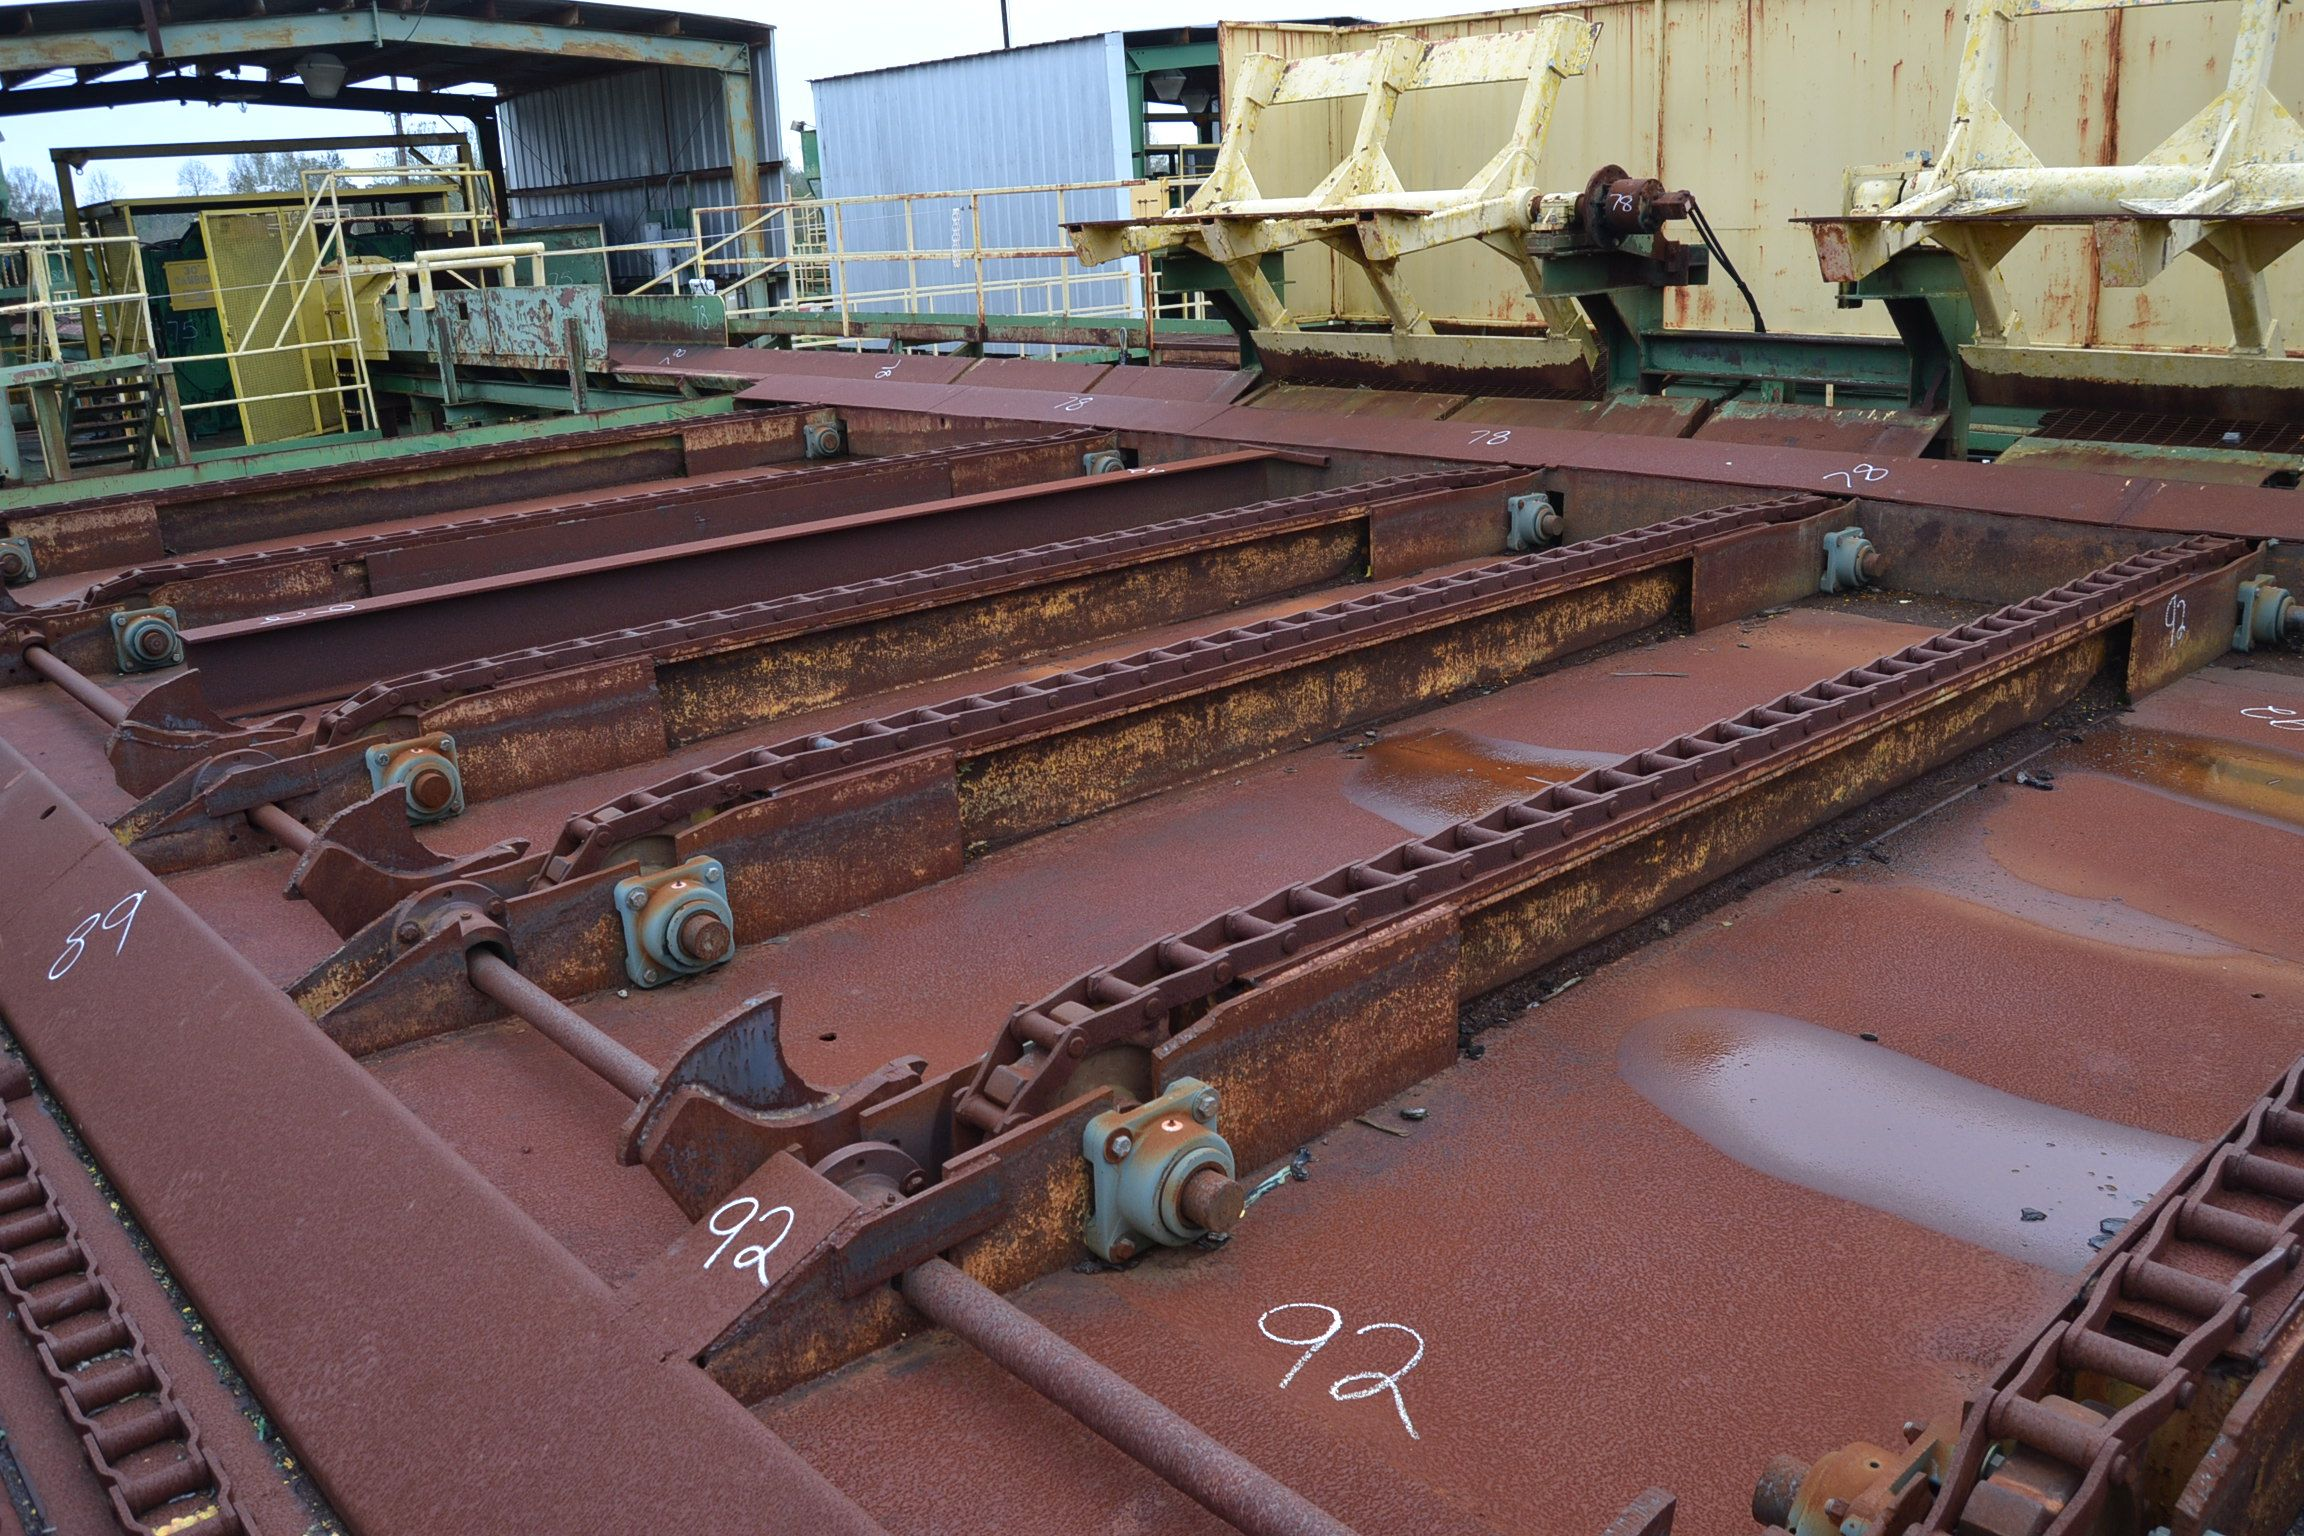 Lot 92 - 20' 6 STRAND LOG DECK W/ 6 ARM STOP & LOADER W/ DRIVE & STEEL SUPPORT